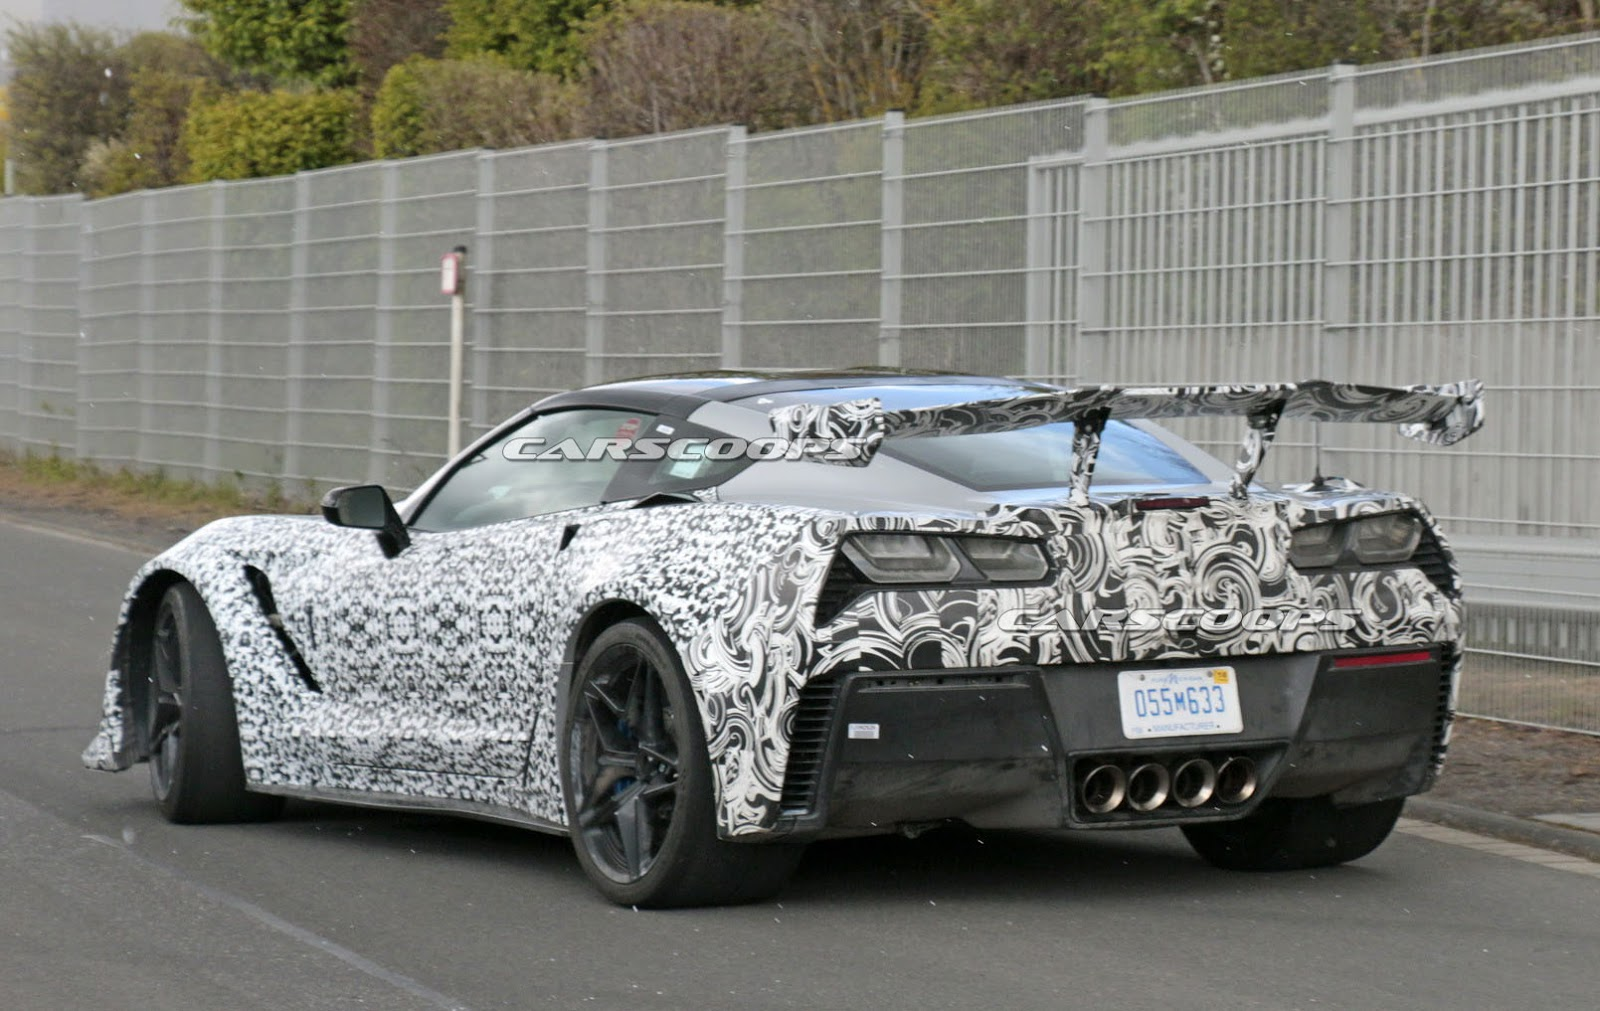 First Close Look On The 2018 Corvette ZR1's Active Aero Kit? | Carscoops